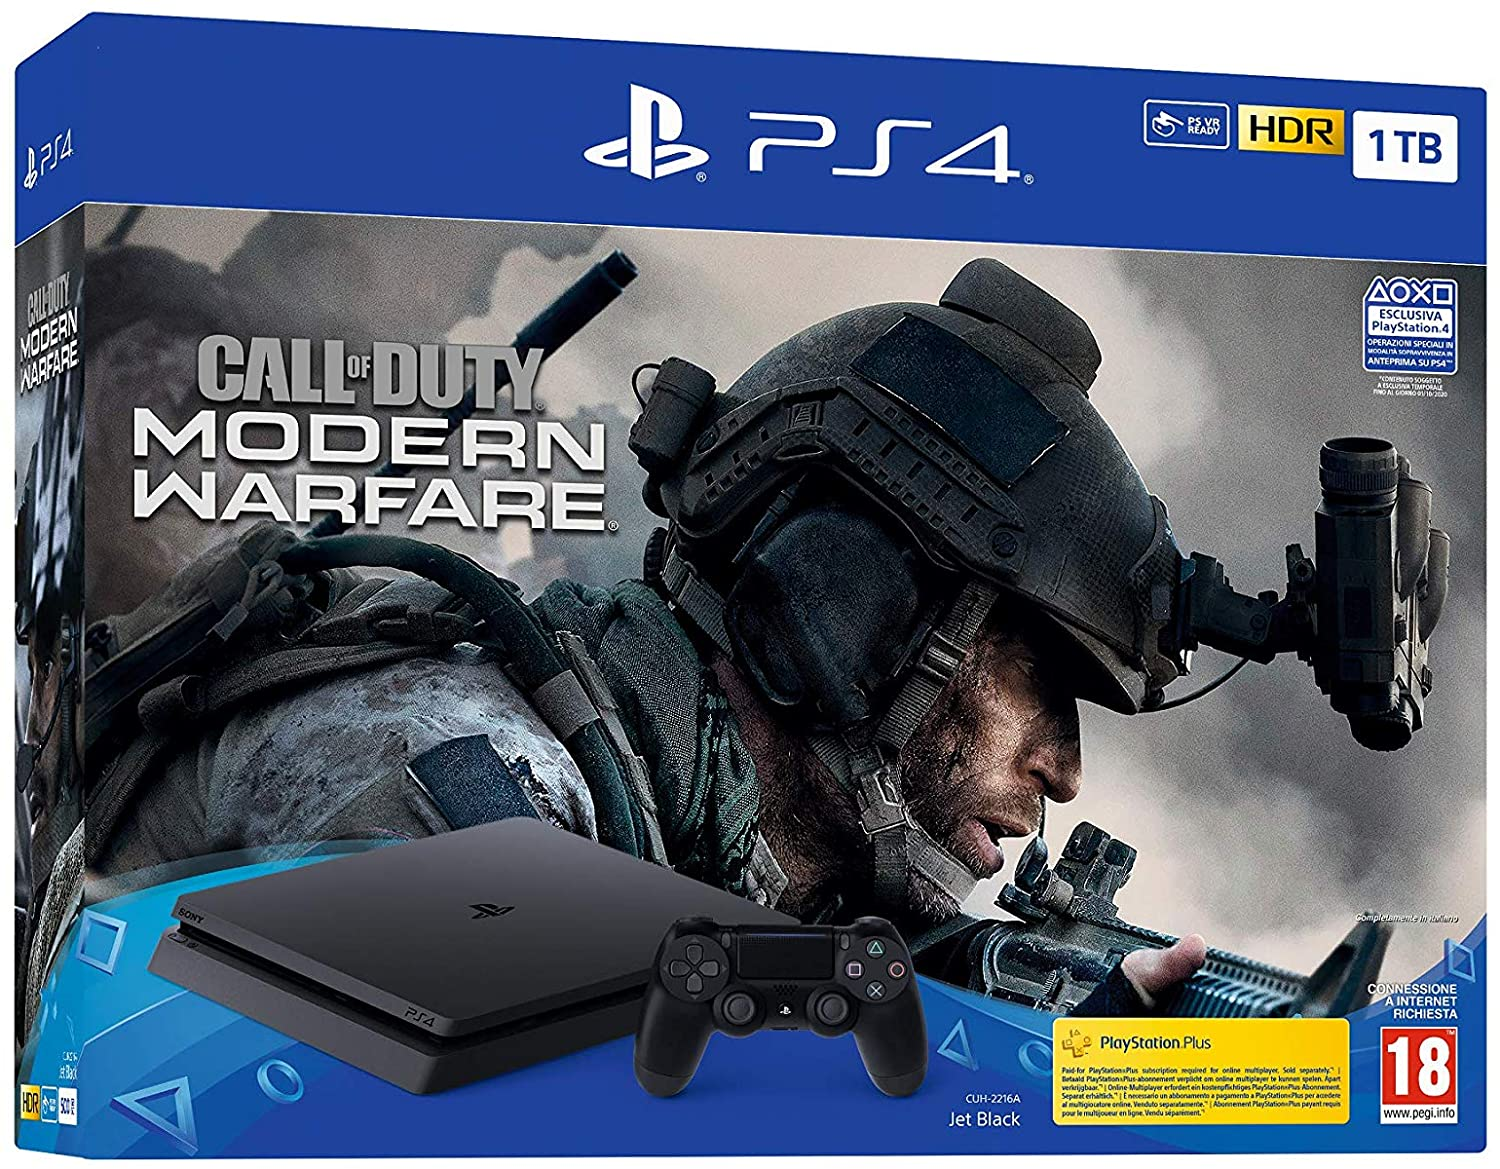 PS4 SONY CONSOLE 1TB F CHASSIS + CALL OF DUTY MODERN WARFARE